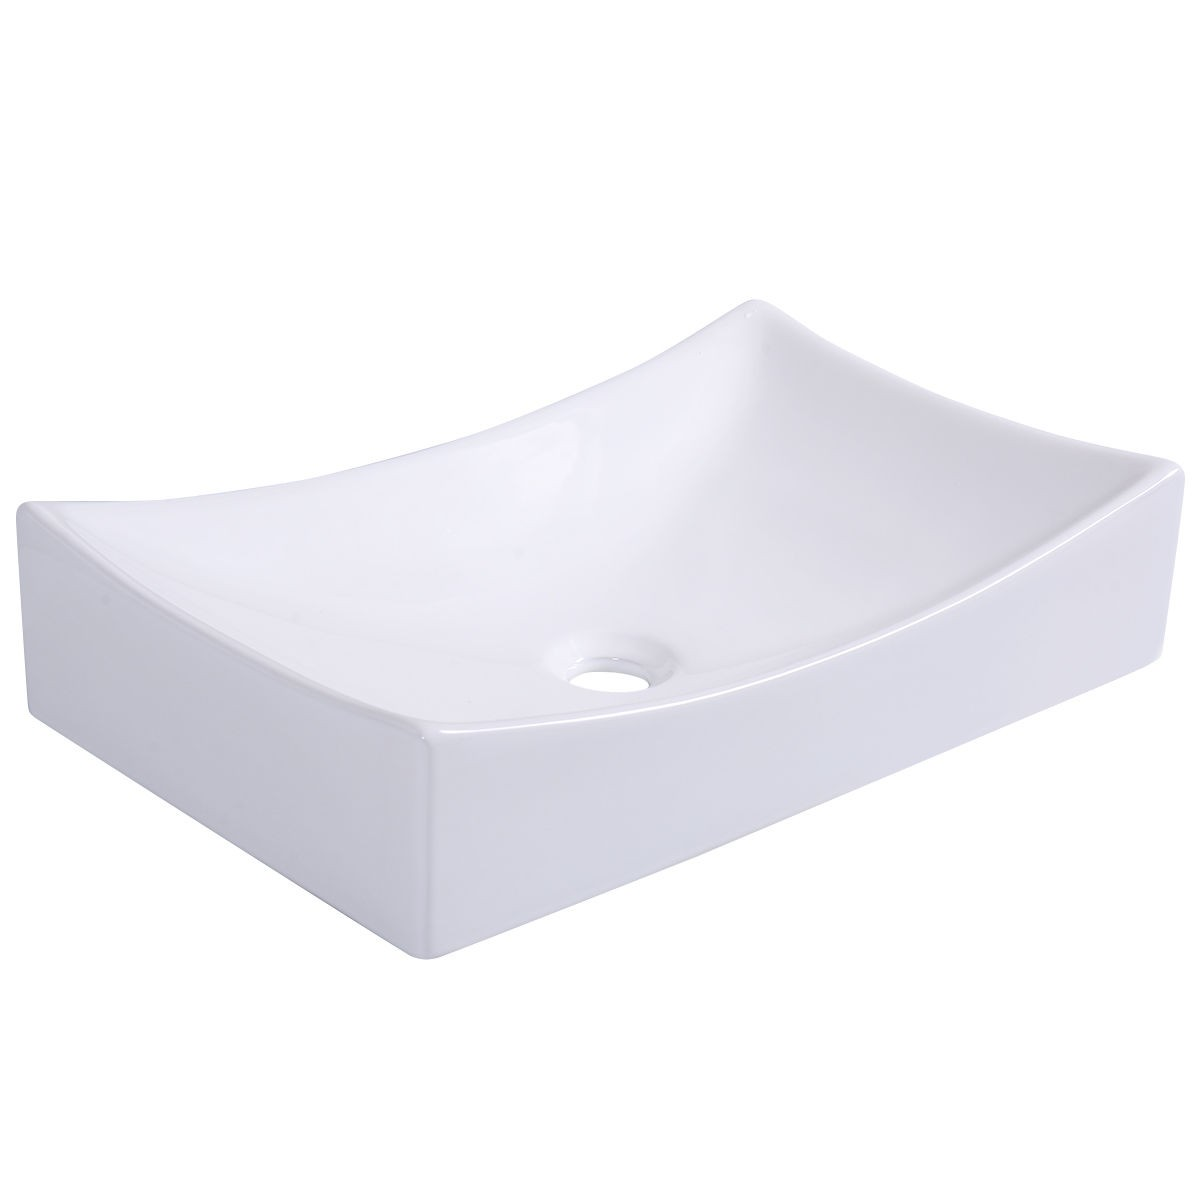 W Modern Design Bathroom Rectangular White Ceramic Vessel